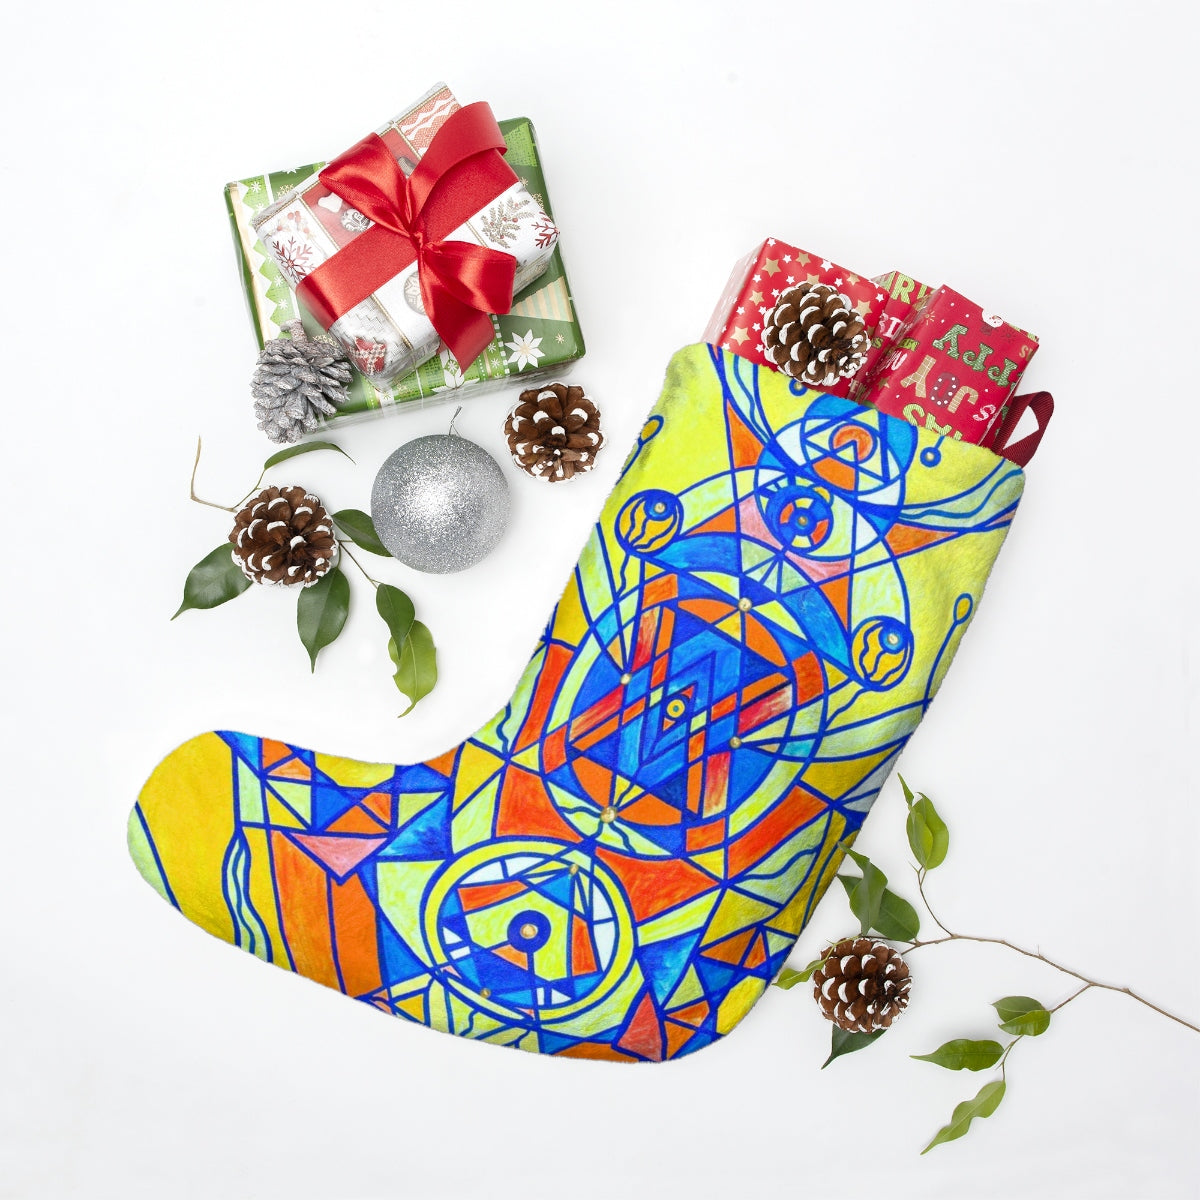 Happiness Pleiadian Lightwork Model - Christmas Stockings